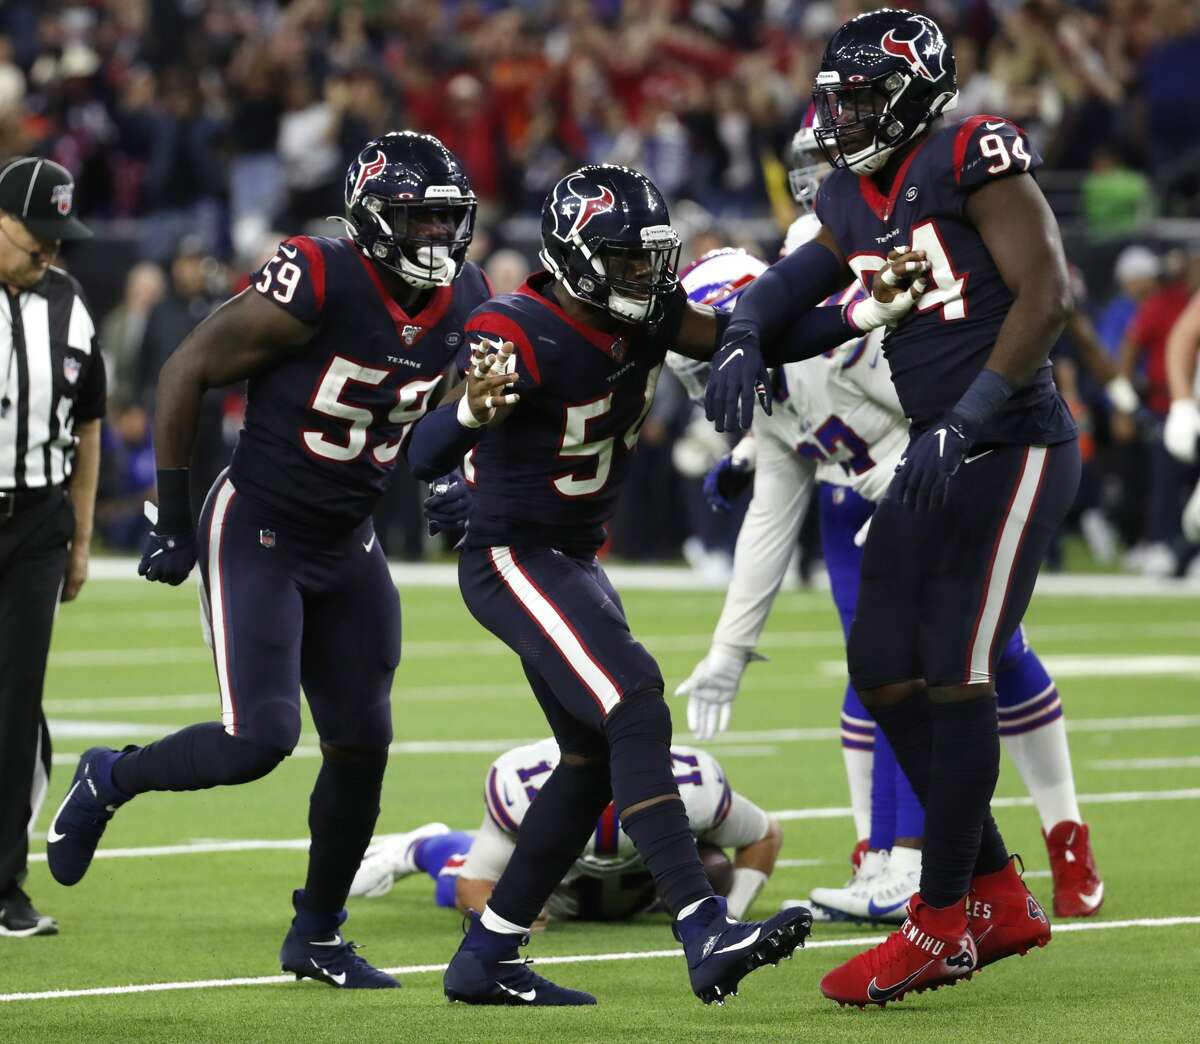 Charles Omenihu (right) and Jacob Martin (center) are two of the young defenders whose upsides the Texans must properly assess before making moves in the offseason.